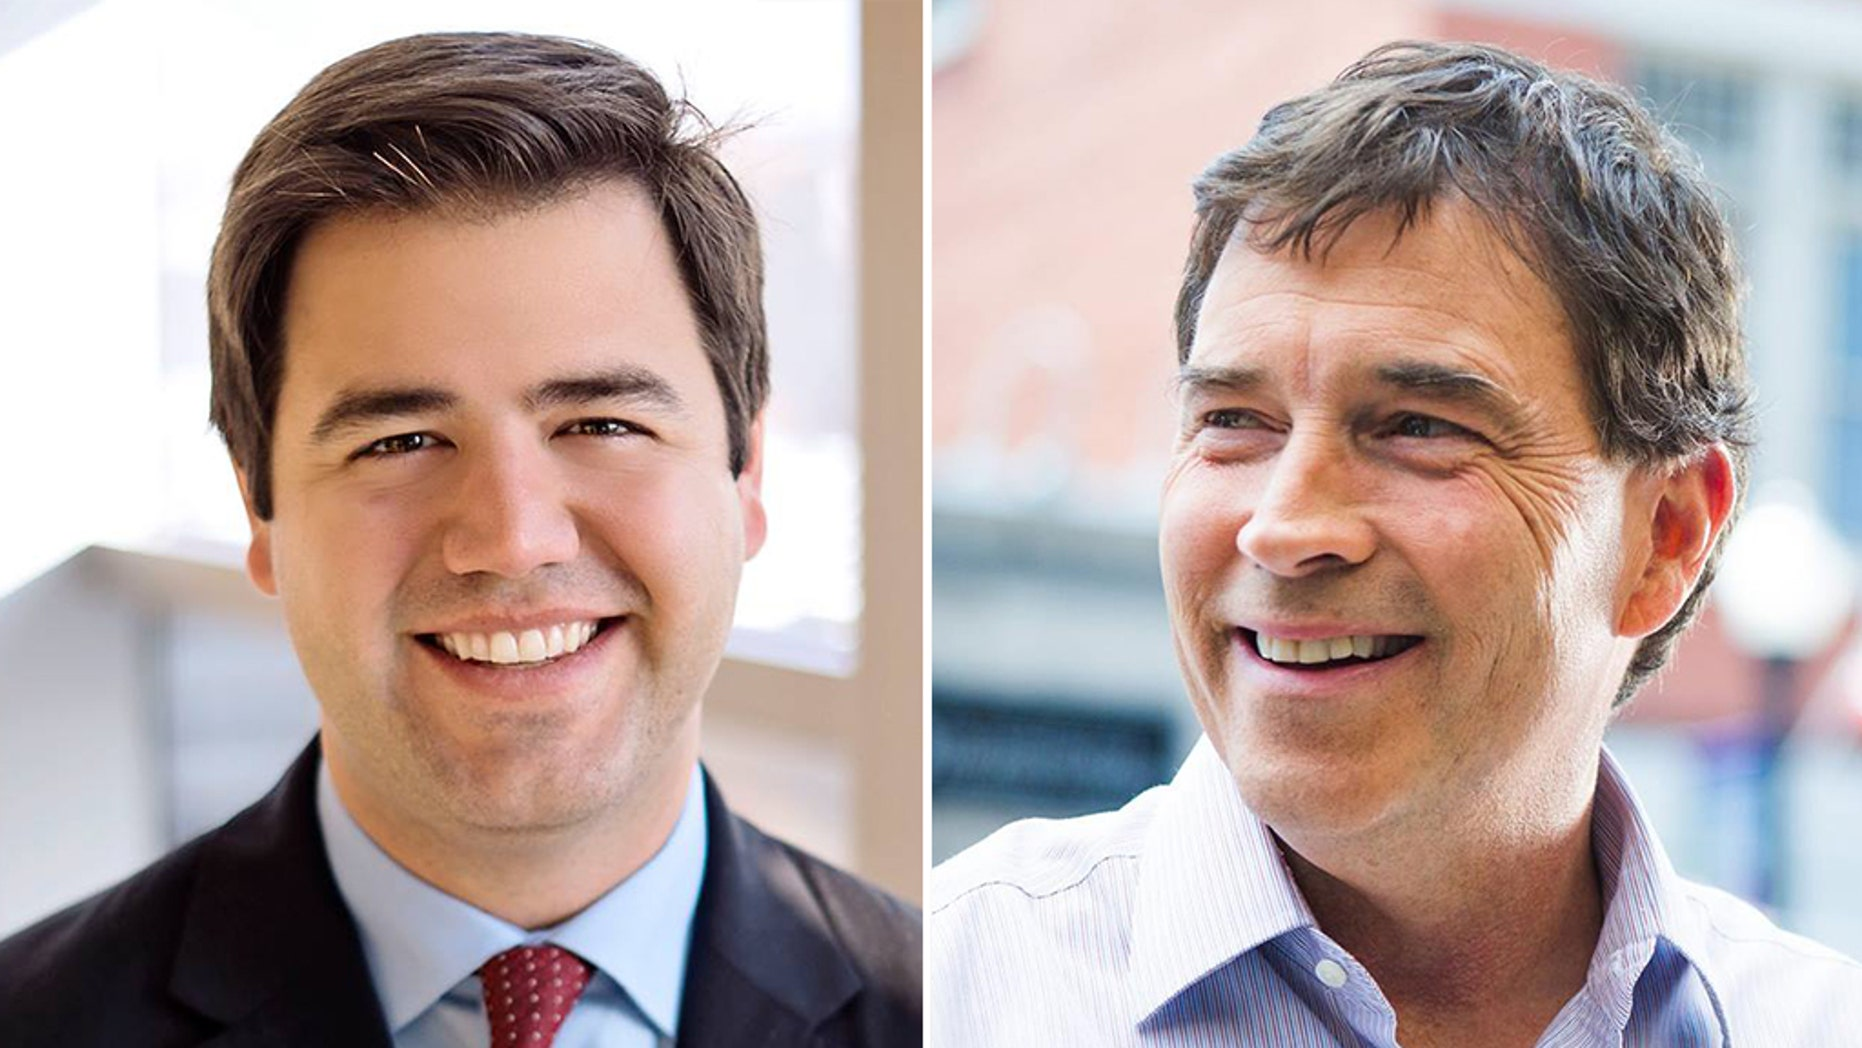 Polls suggest a close race between Democrat Danny O'Connor, left, and Republican Troy Balderson.